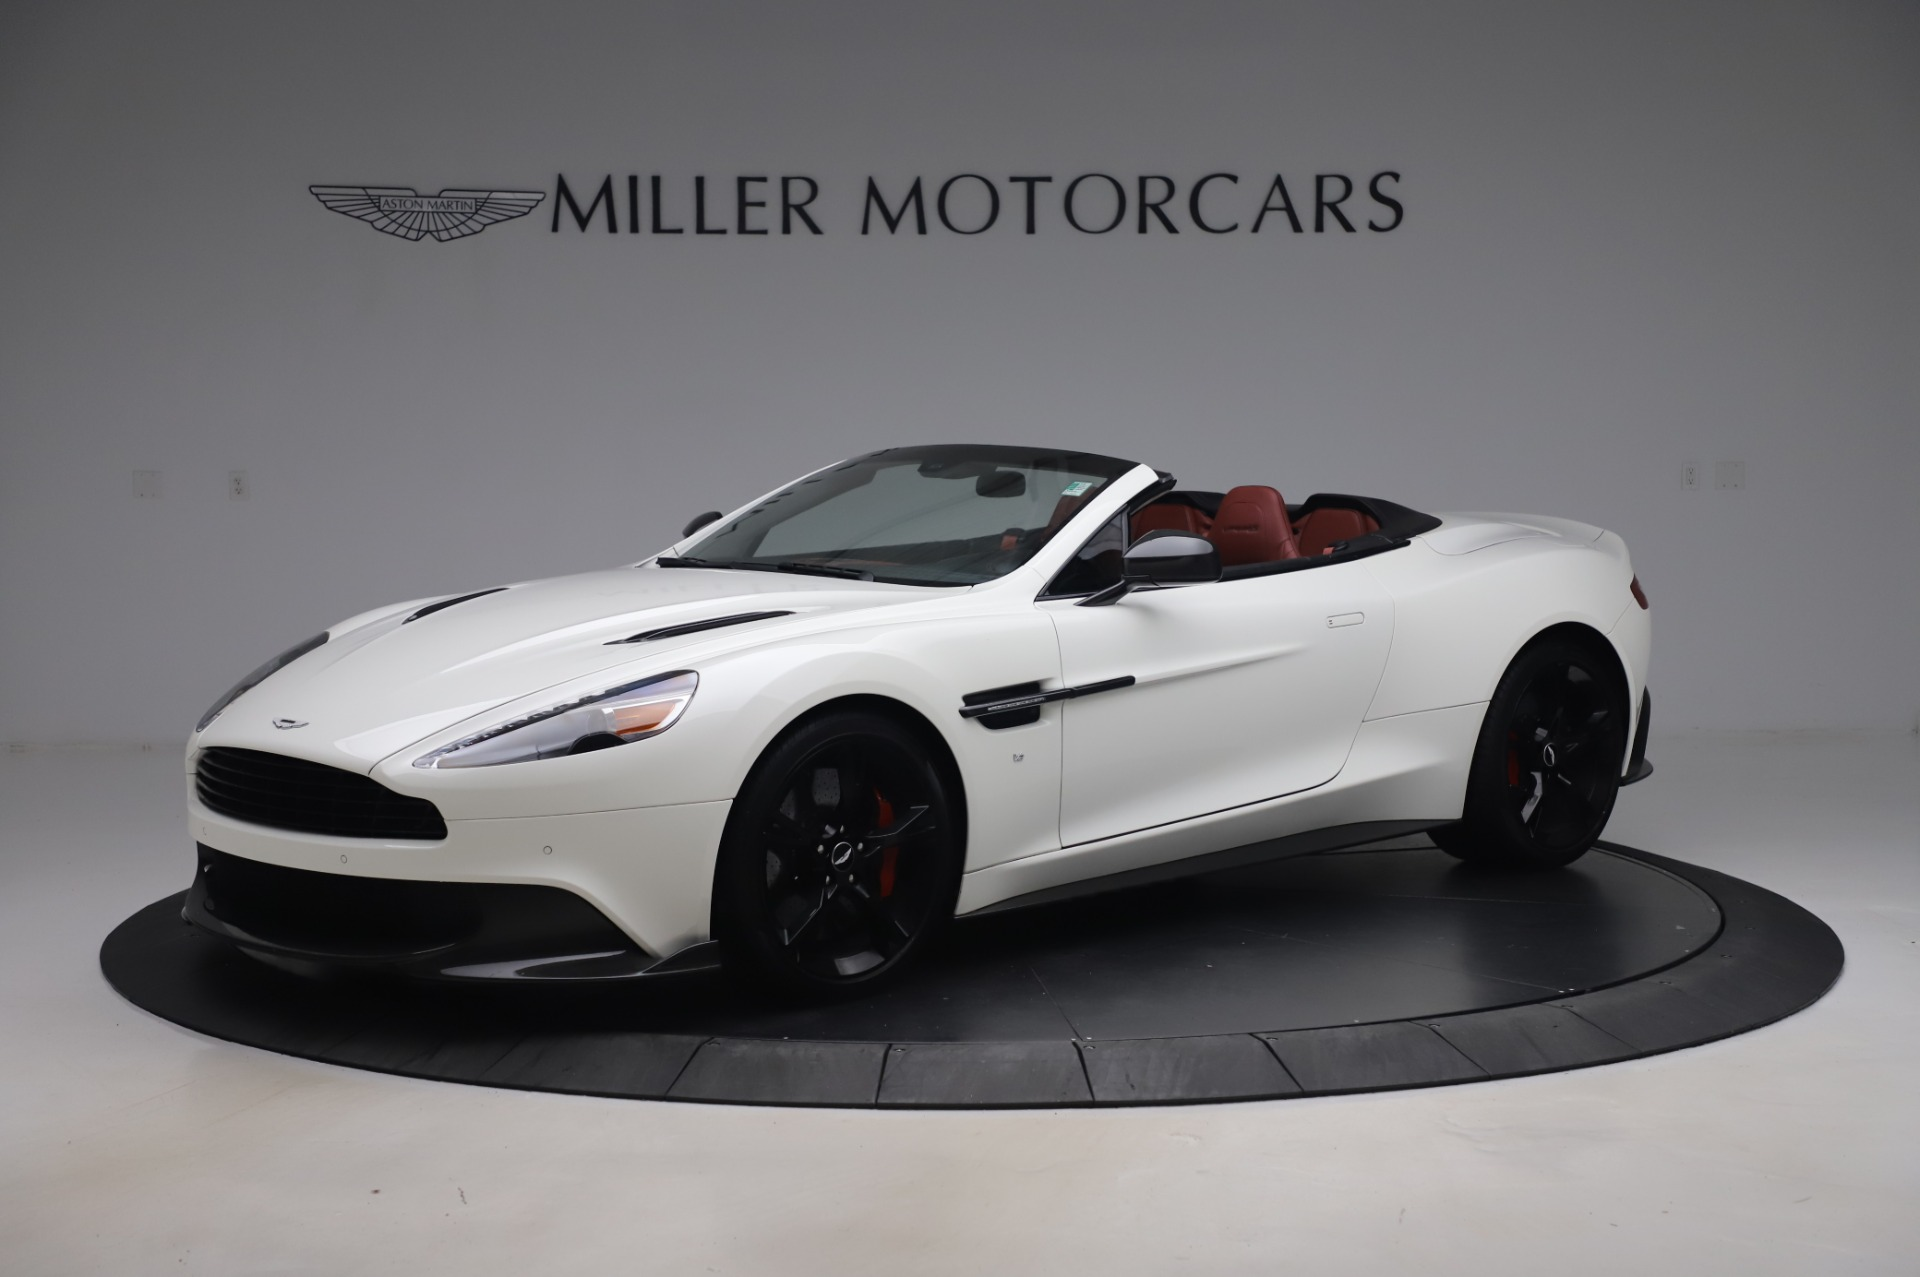 Used 2018 Aston Martin Vanquish S Volante for sale $183,900 at Alfa Romeo of Greenwich in Greenwich CT 06830 1